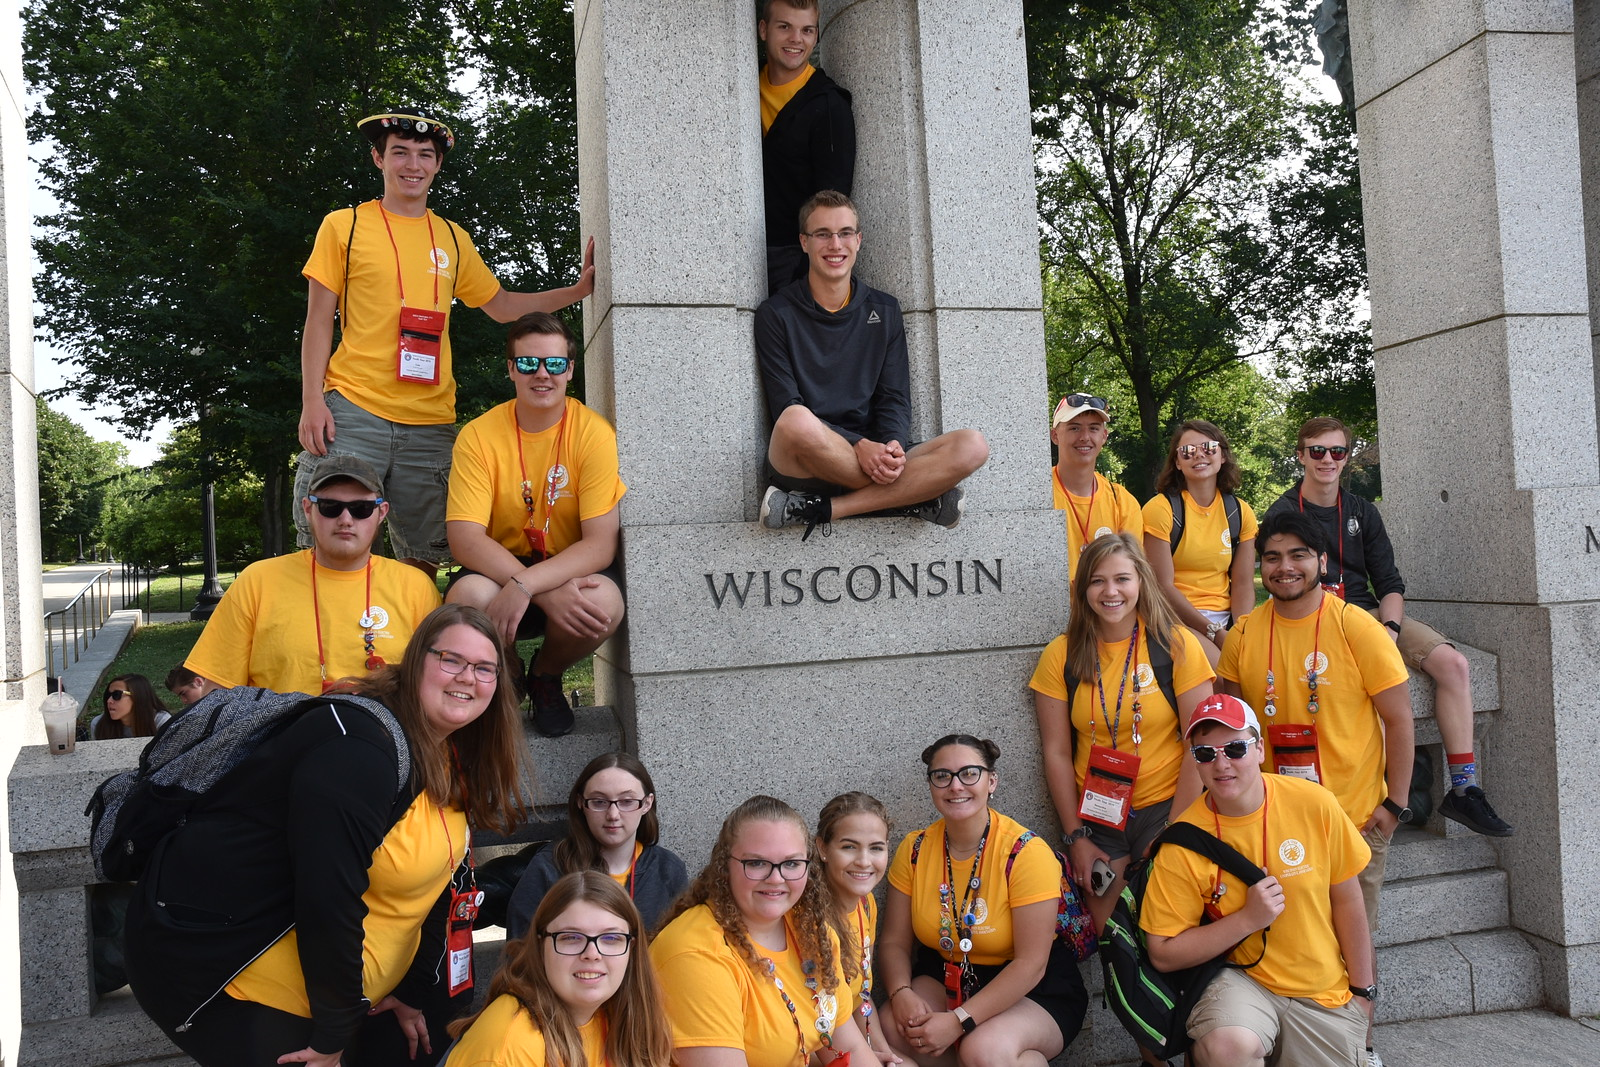 Wisconsin%20Group.jpg